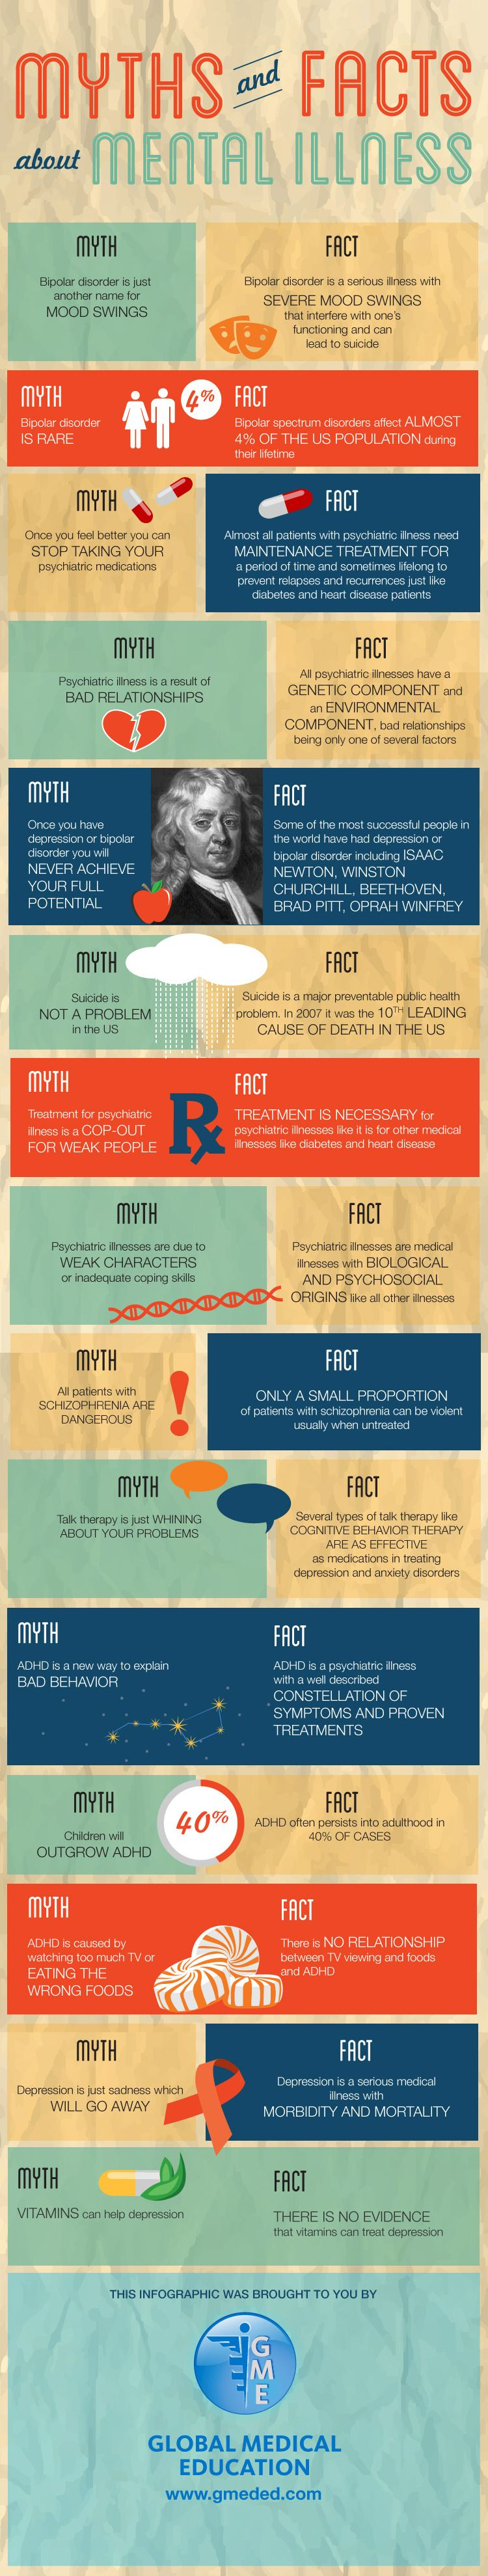 myths and facts about mental health essay Exercise good for mental health,  here are 10 fitness facts that may help inspire you to get off the couch  biggest man myths debunked video.